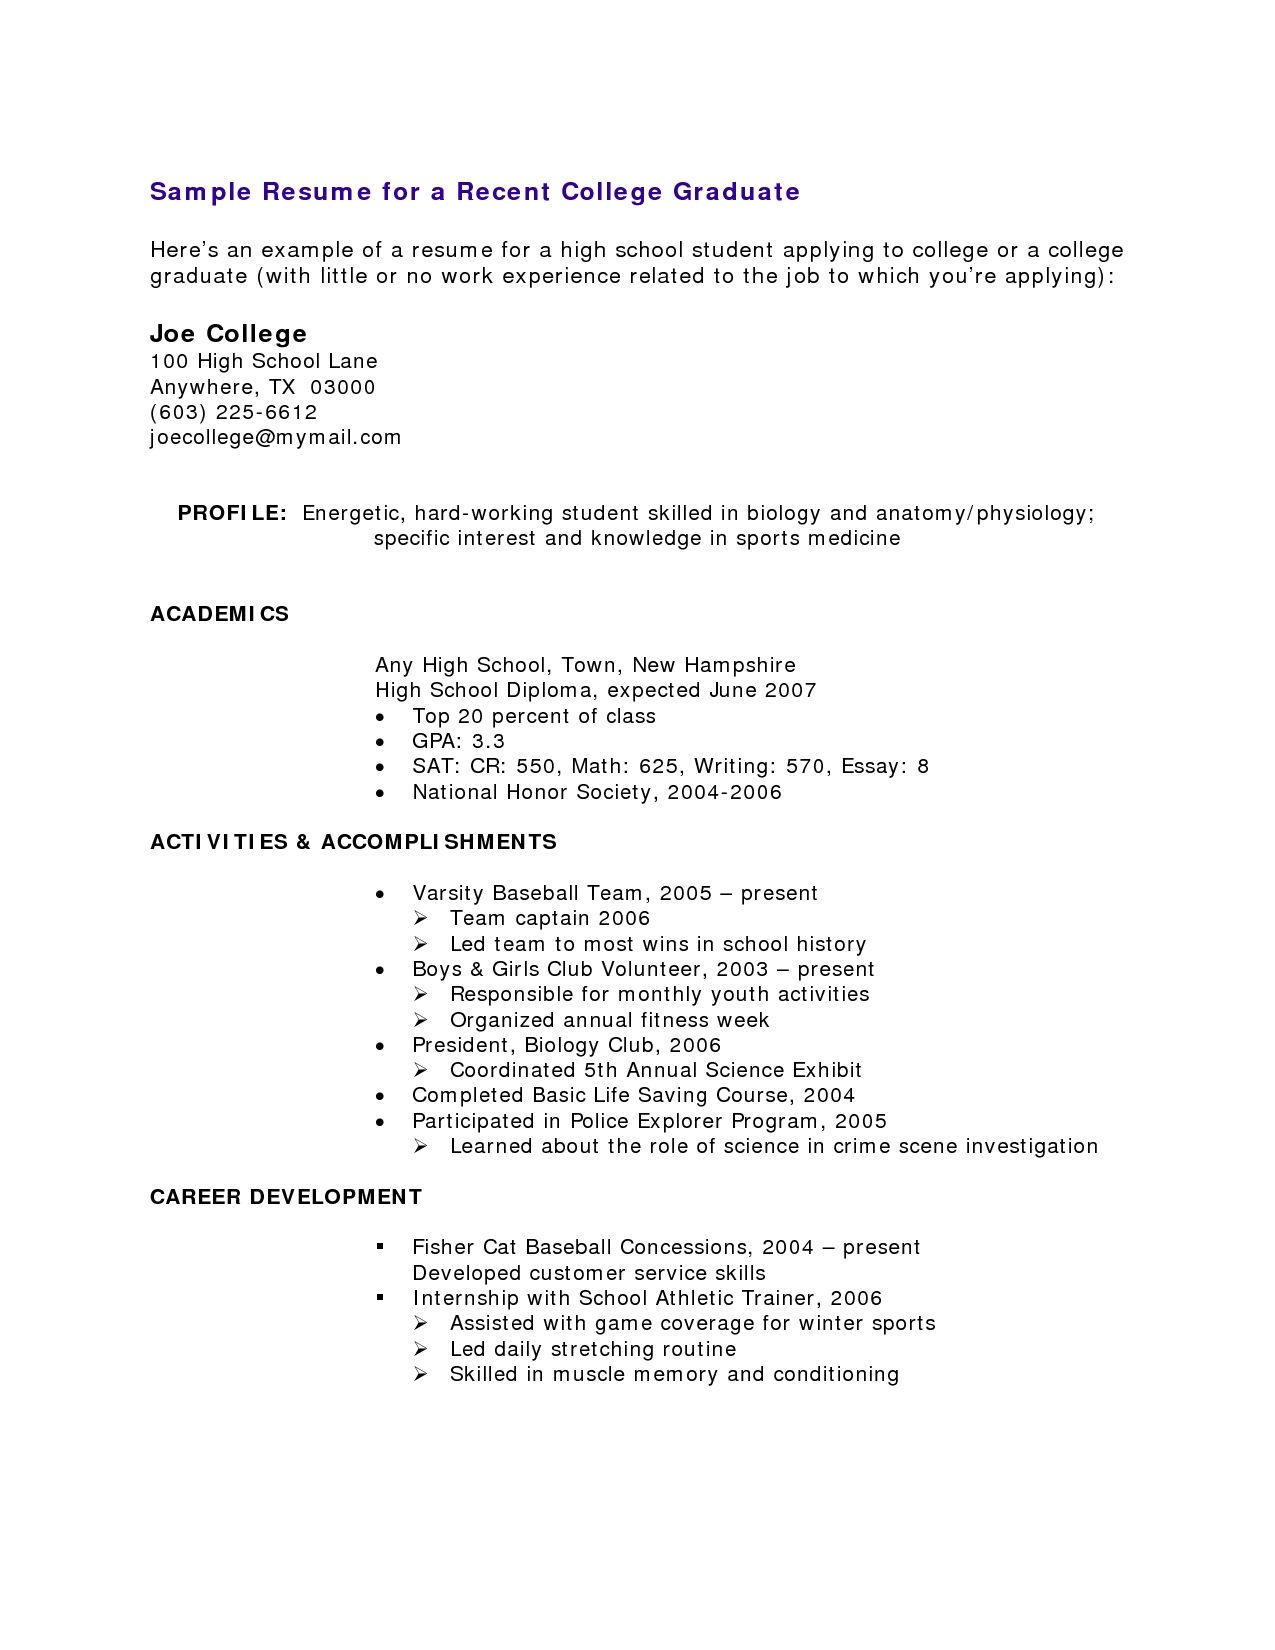 resume examples for highschool students with no work experience